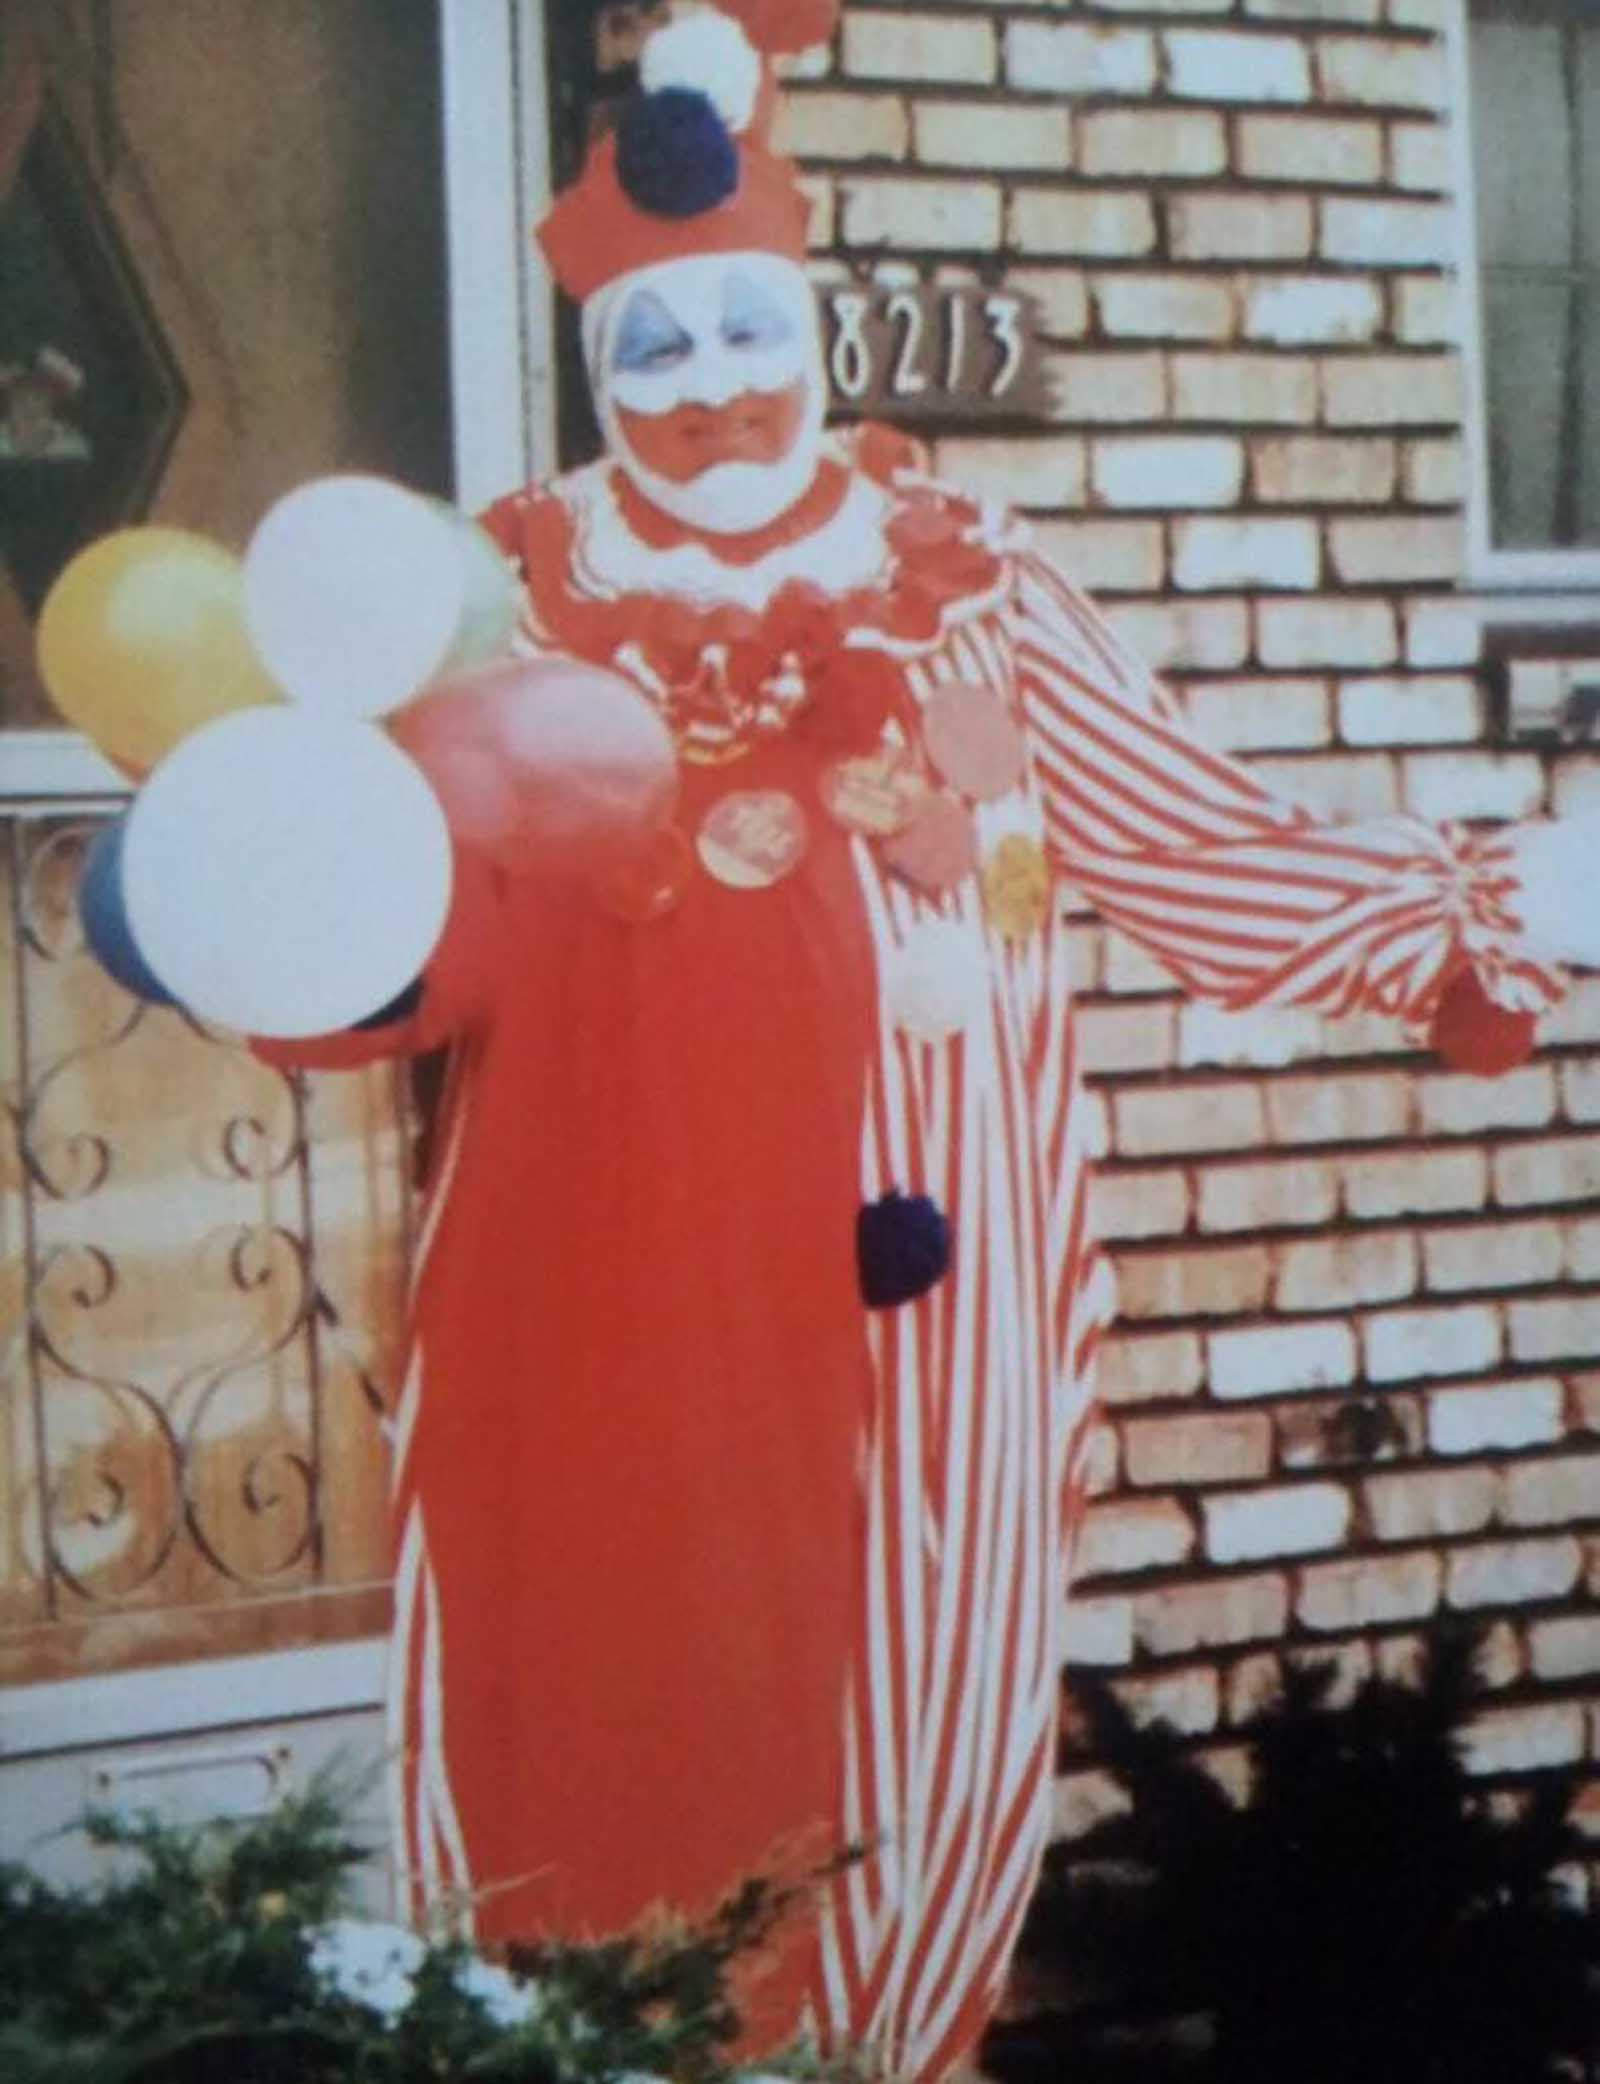 On the outside, John Wayne Gacy looked like your normal family man who helped out in the community. But underneath that clowny smile was something evil.